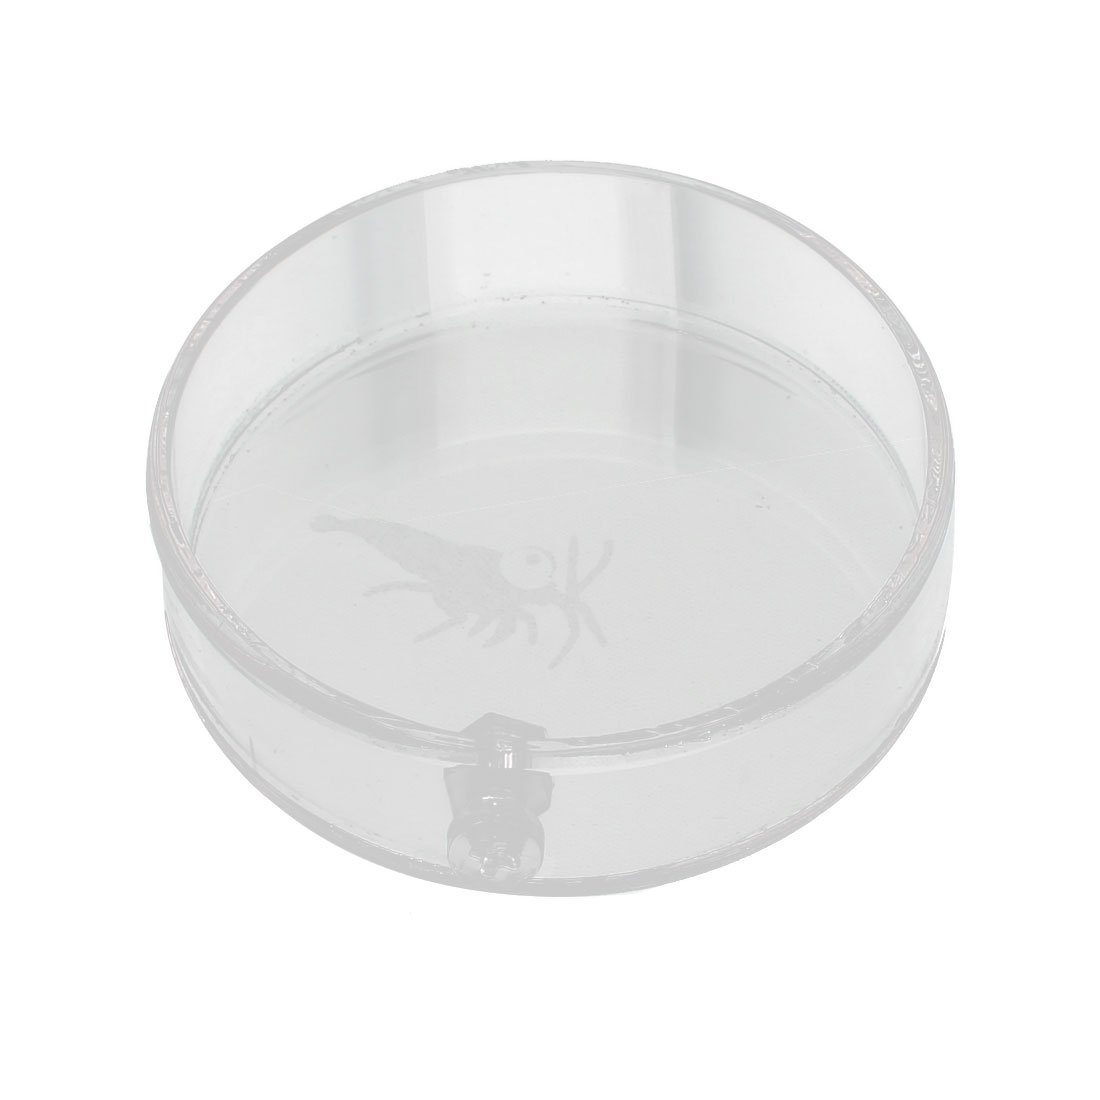 Aquarium Plastic Round Shaped Feeder Dish Plate Vessel Clear 6cm Dia for Shrimp